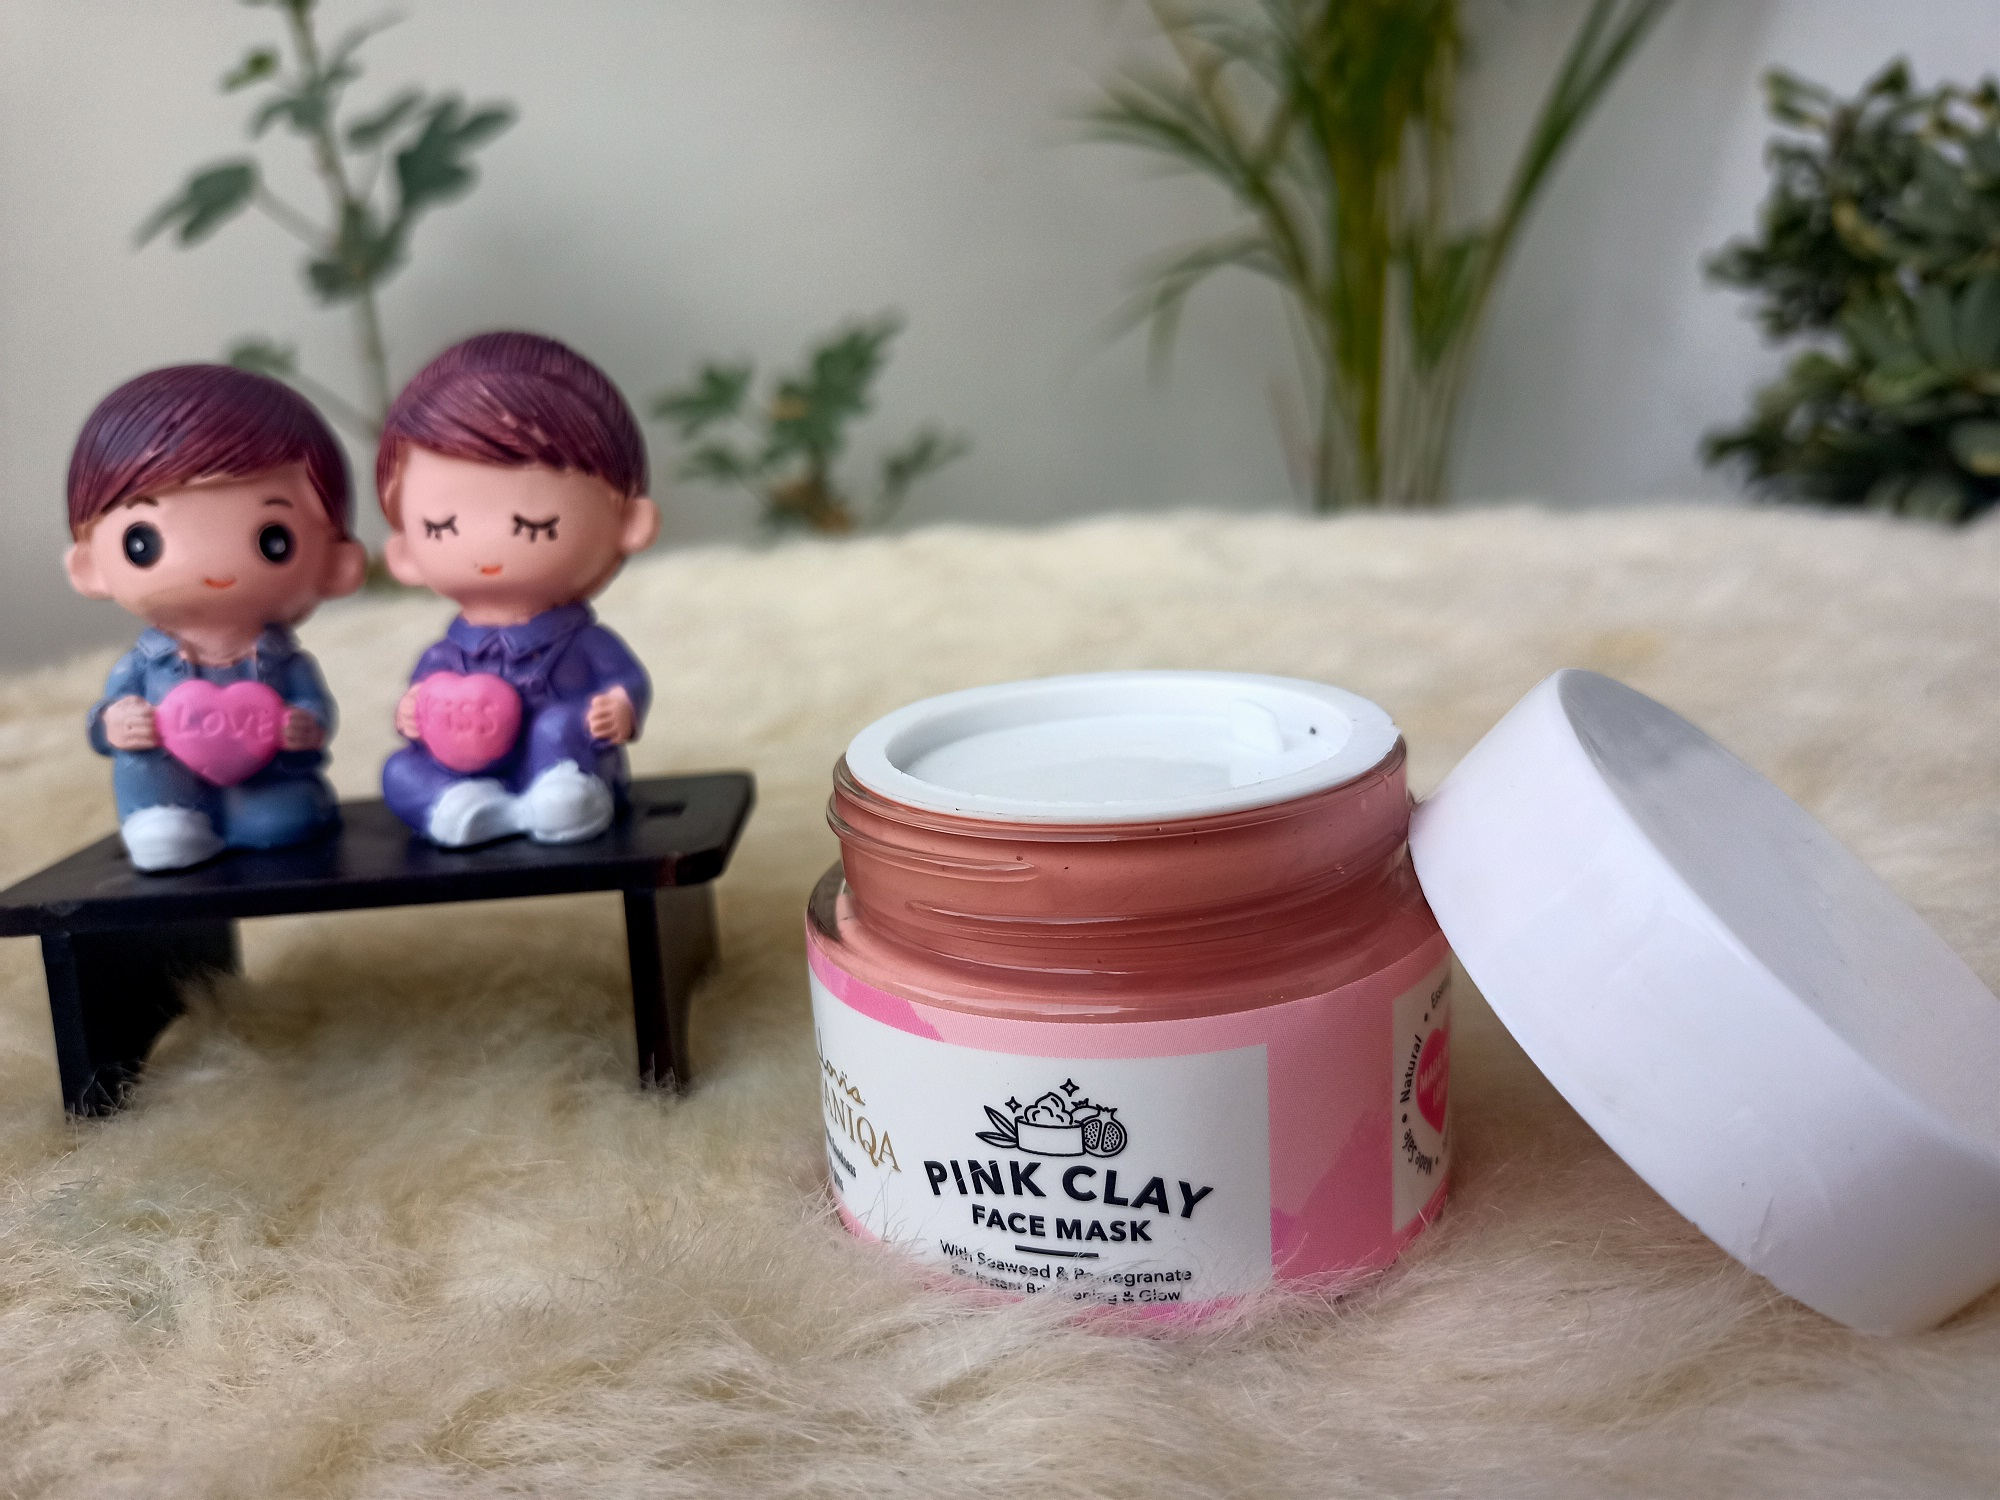 Clovia Botaniqa Pink Clay Face Mask